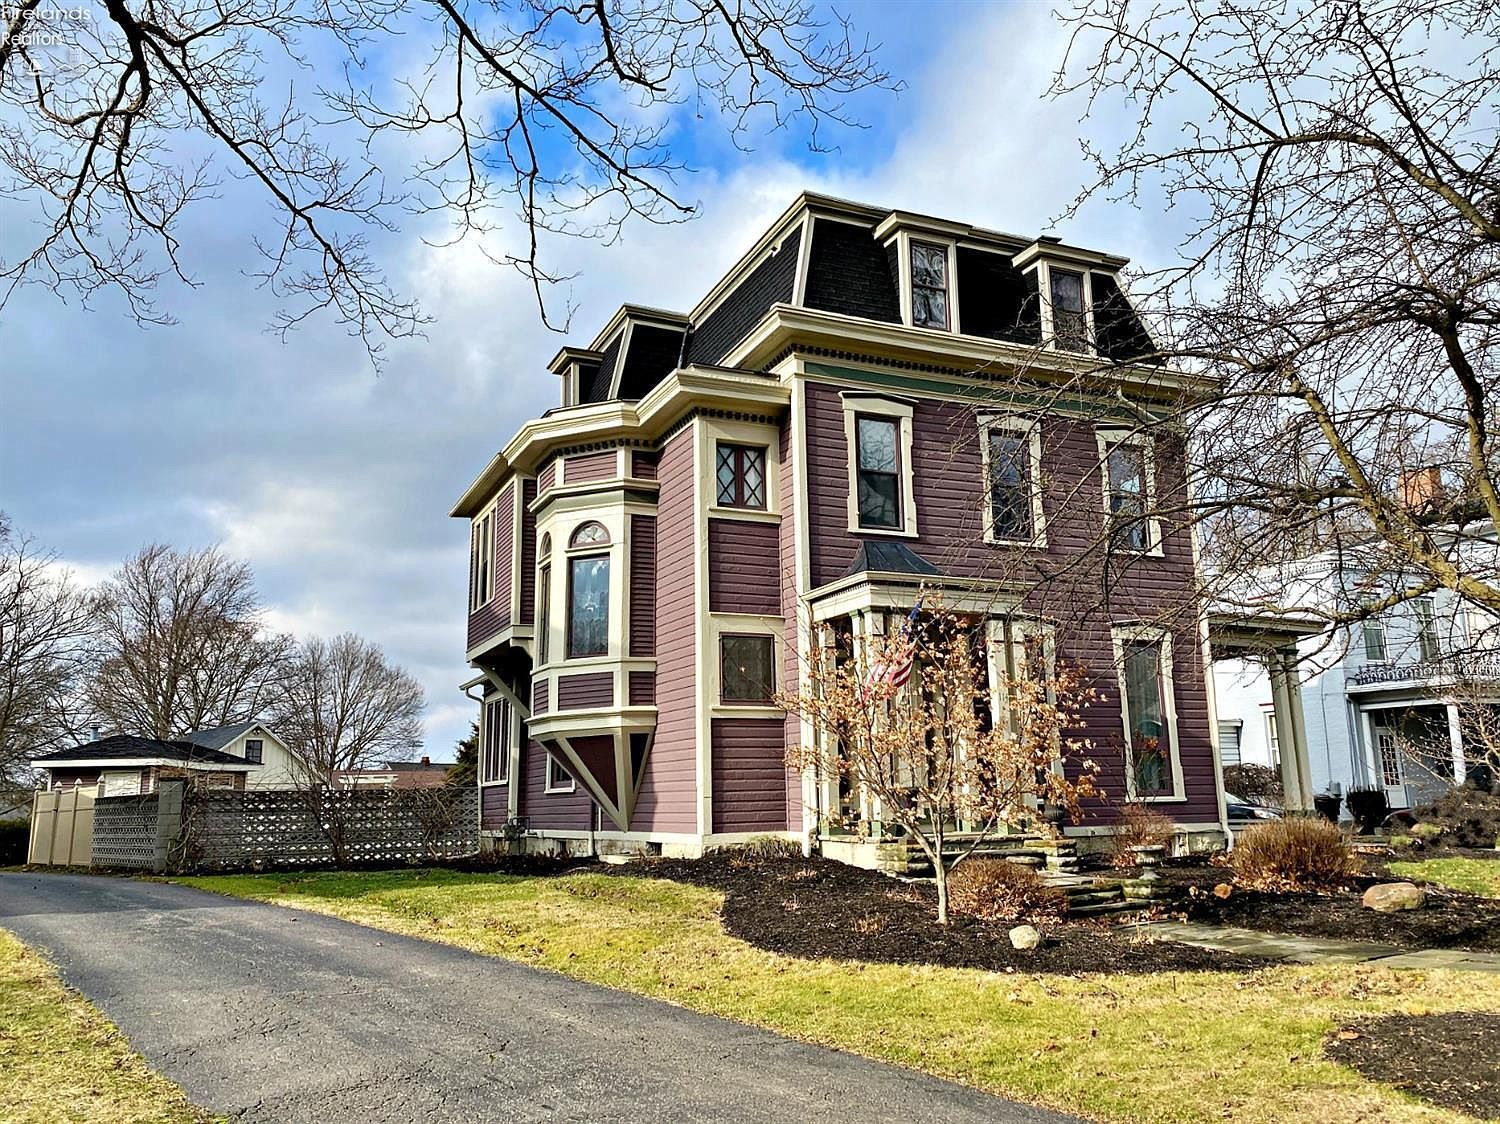 Amazing Second Empire Mansard Victorian House Plans With Wrap Around Porch And Metal Roofing Tile Castletop Also G Old Victorian Homes Victorian Homes Mansions